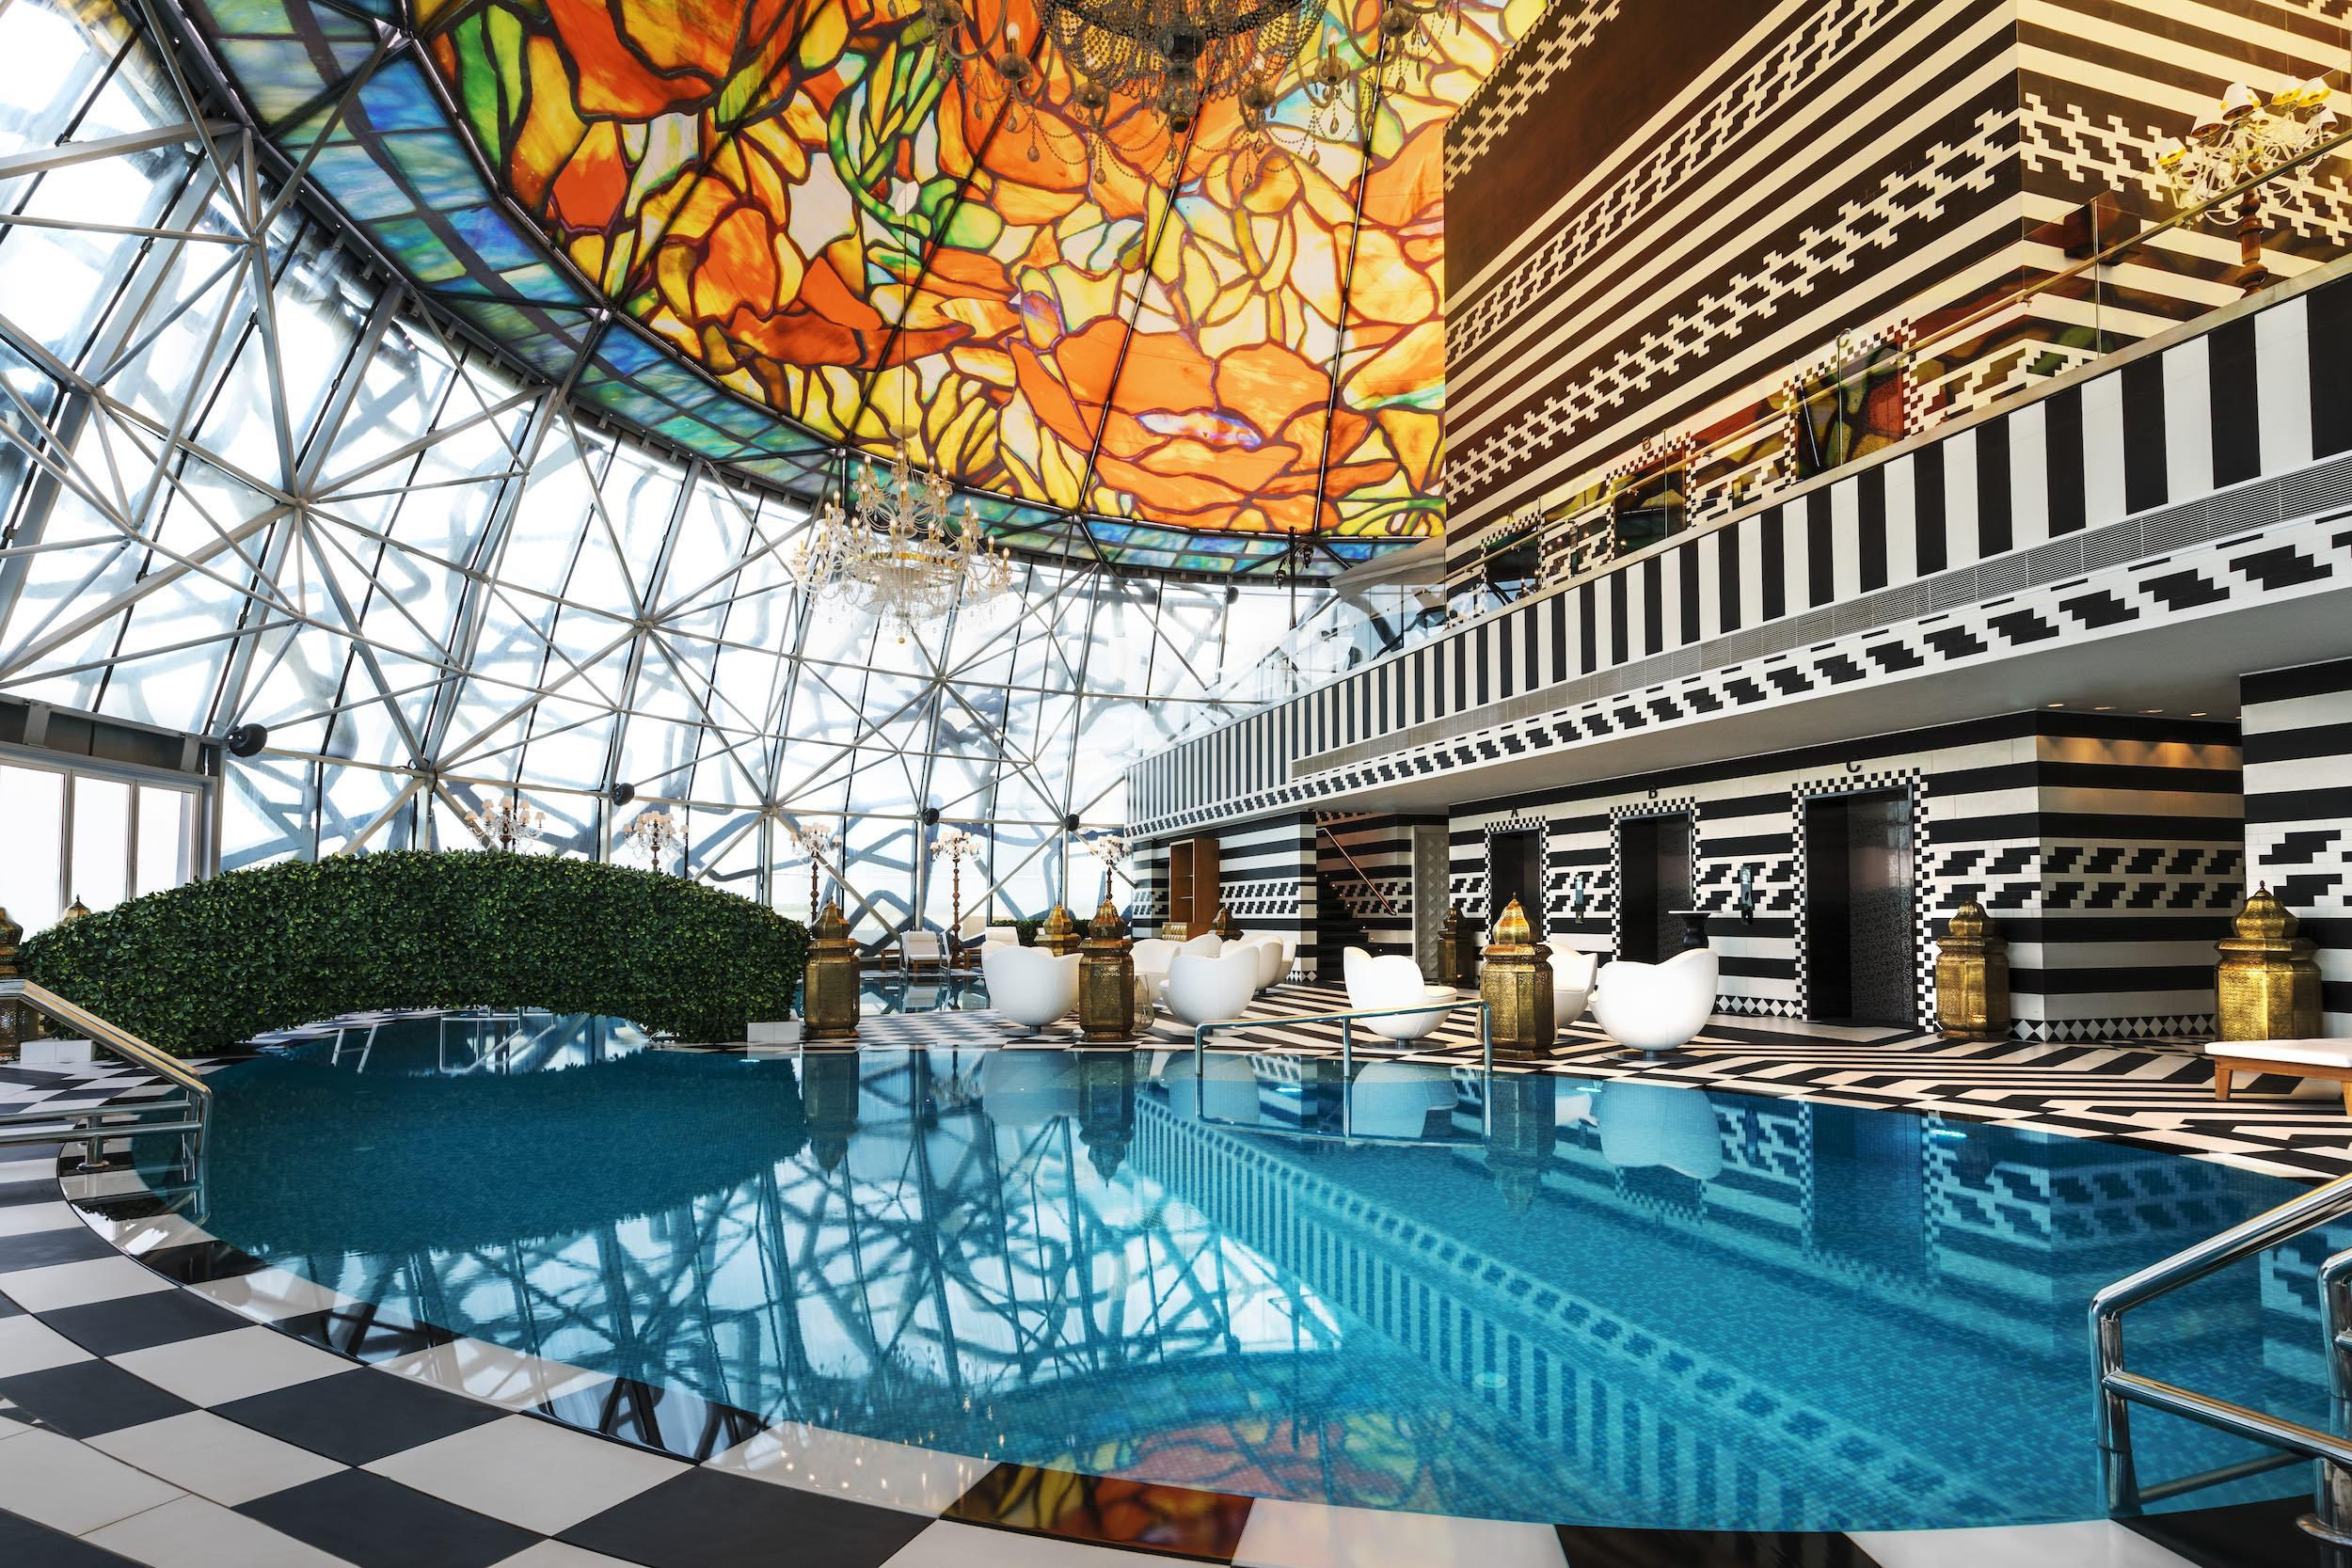 Pool surrounded by black and white floor and colorful glass ceiling